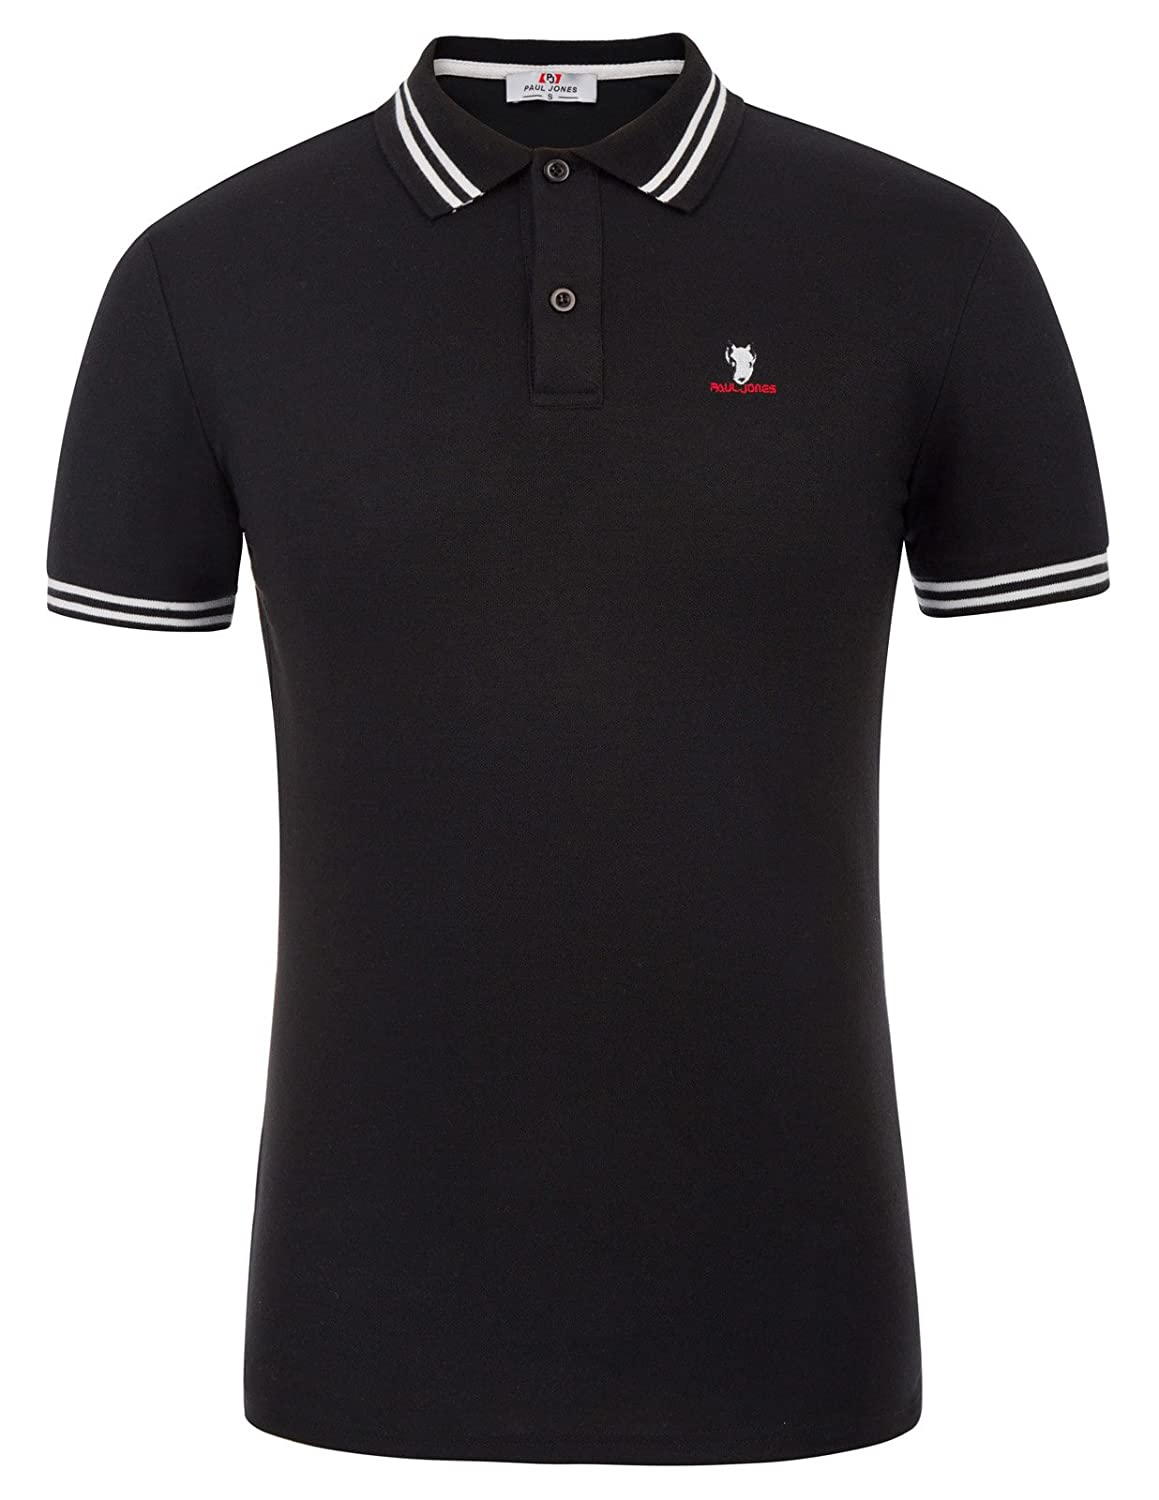 11584bc44fd1 Polo Shirt  Short sleeves  Dog embroidery  Contrast stripe on cuffs and  collar  The shirt has a little stretch. This classic golf polo shirts is  long enough ...